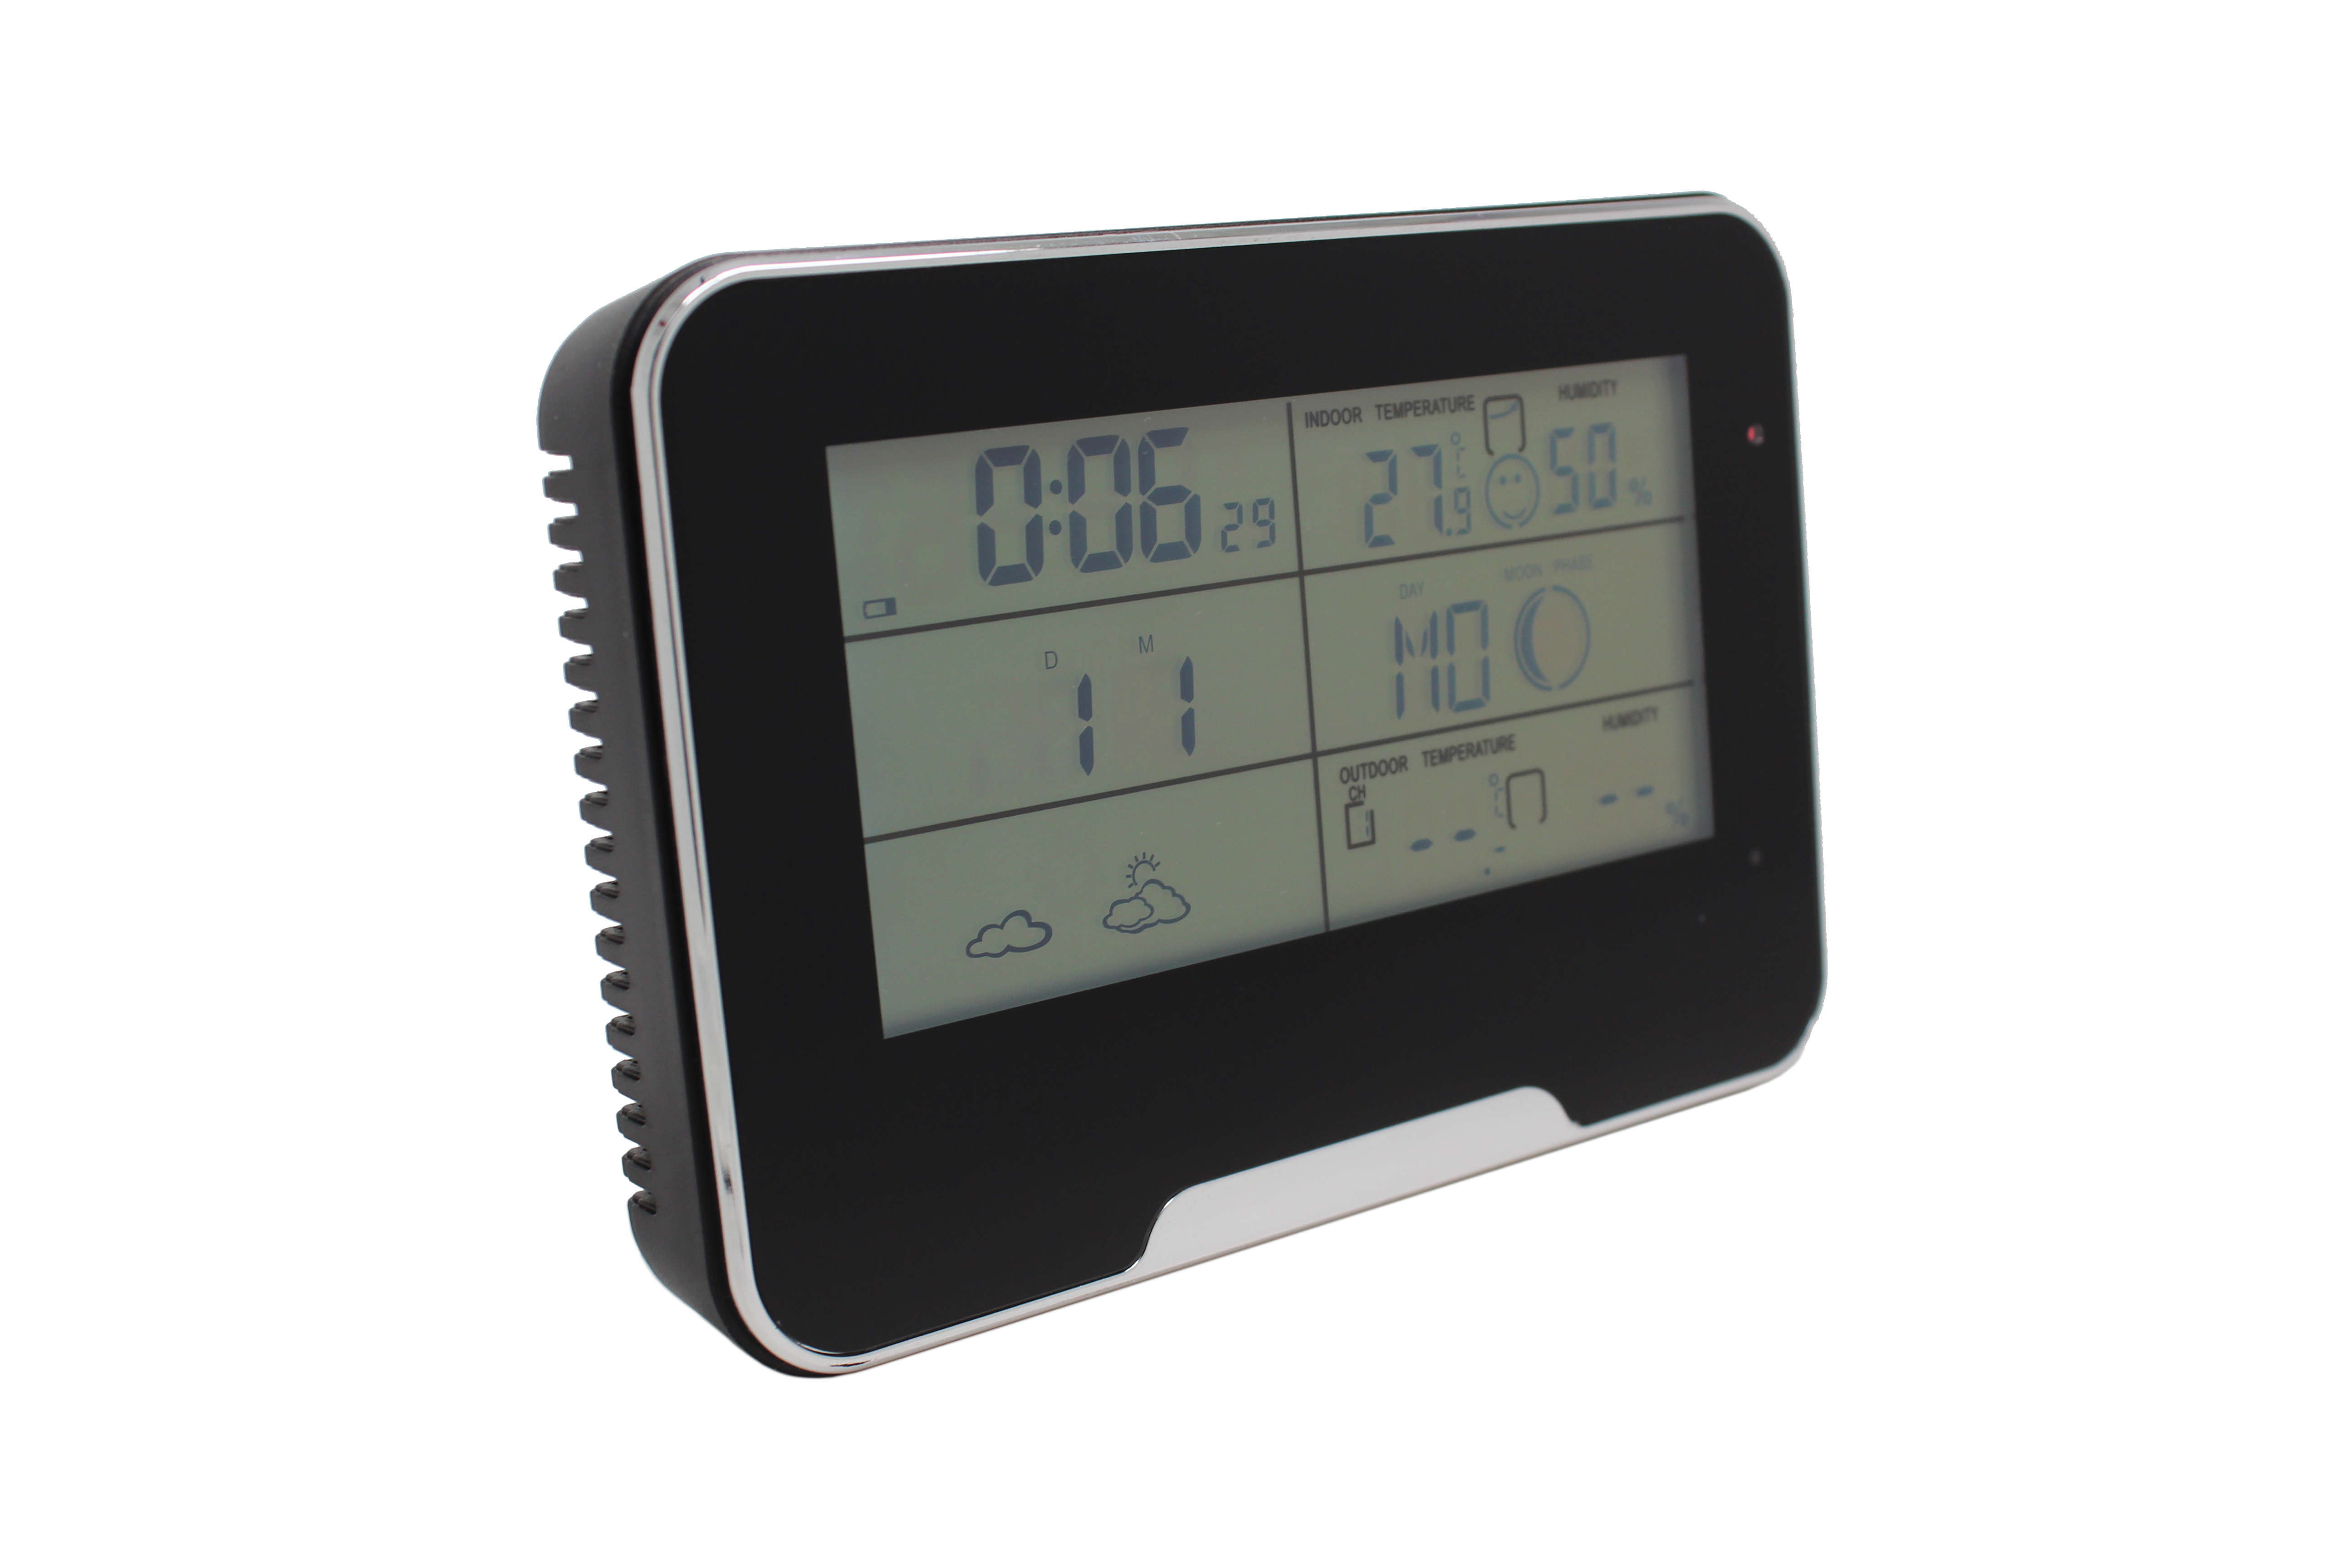 Hidden Spy Camera Weather Station 1080p Hd Built In